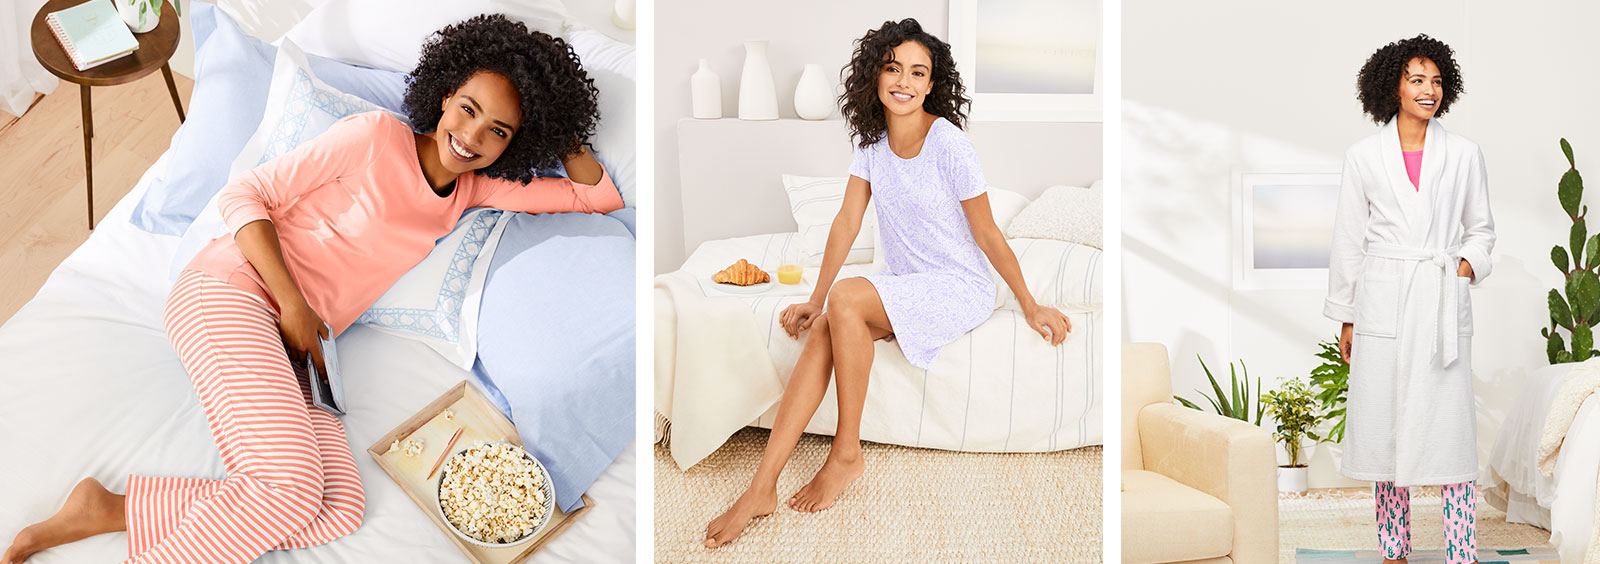 Keep Cool This Summer With This Easy, Breezy Sleepwear